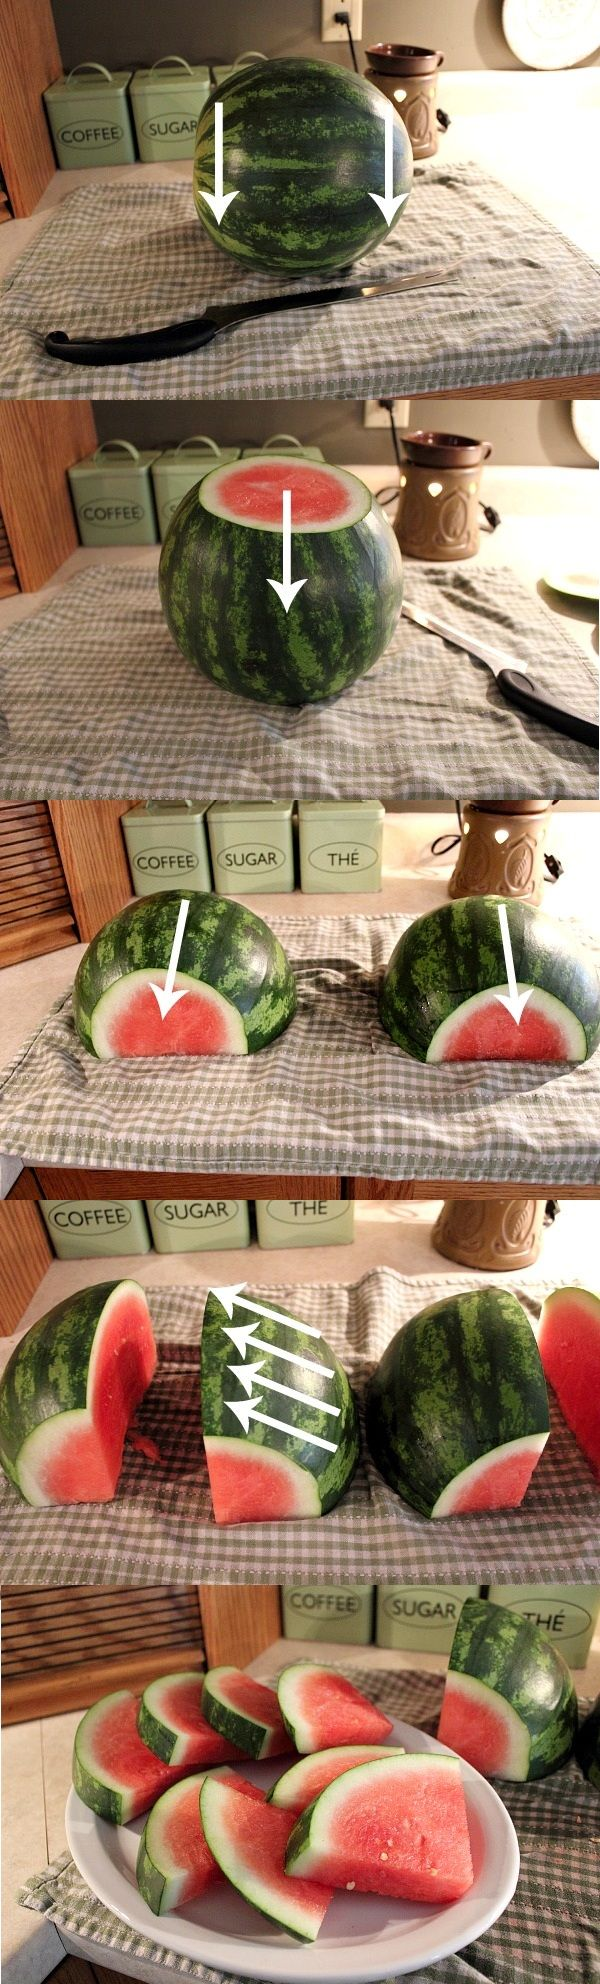 The easy way to cut a watermelon